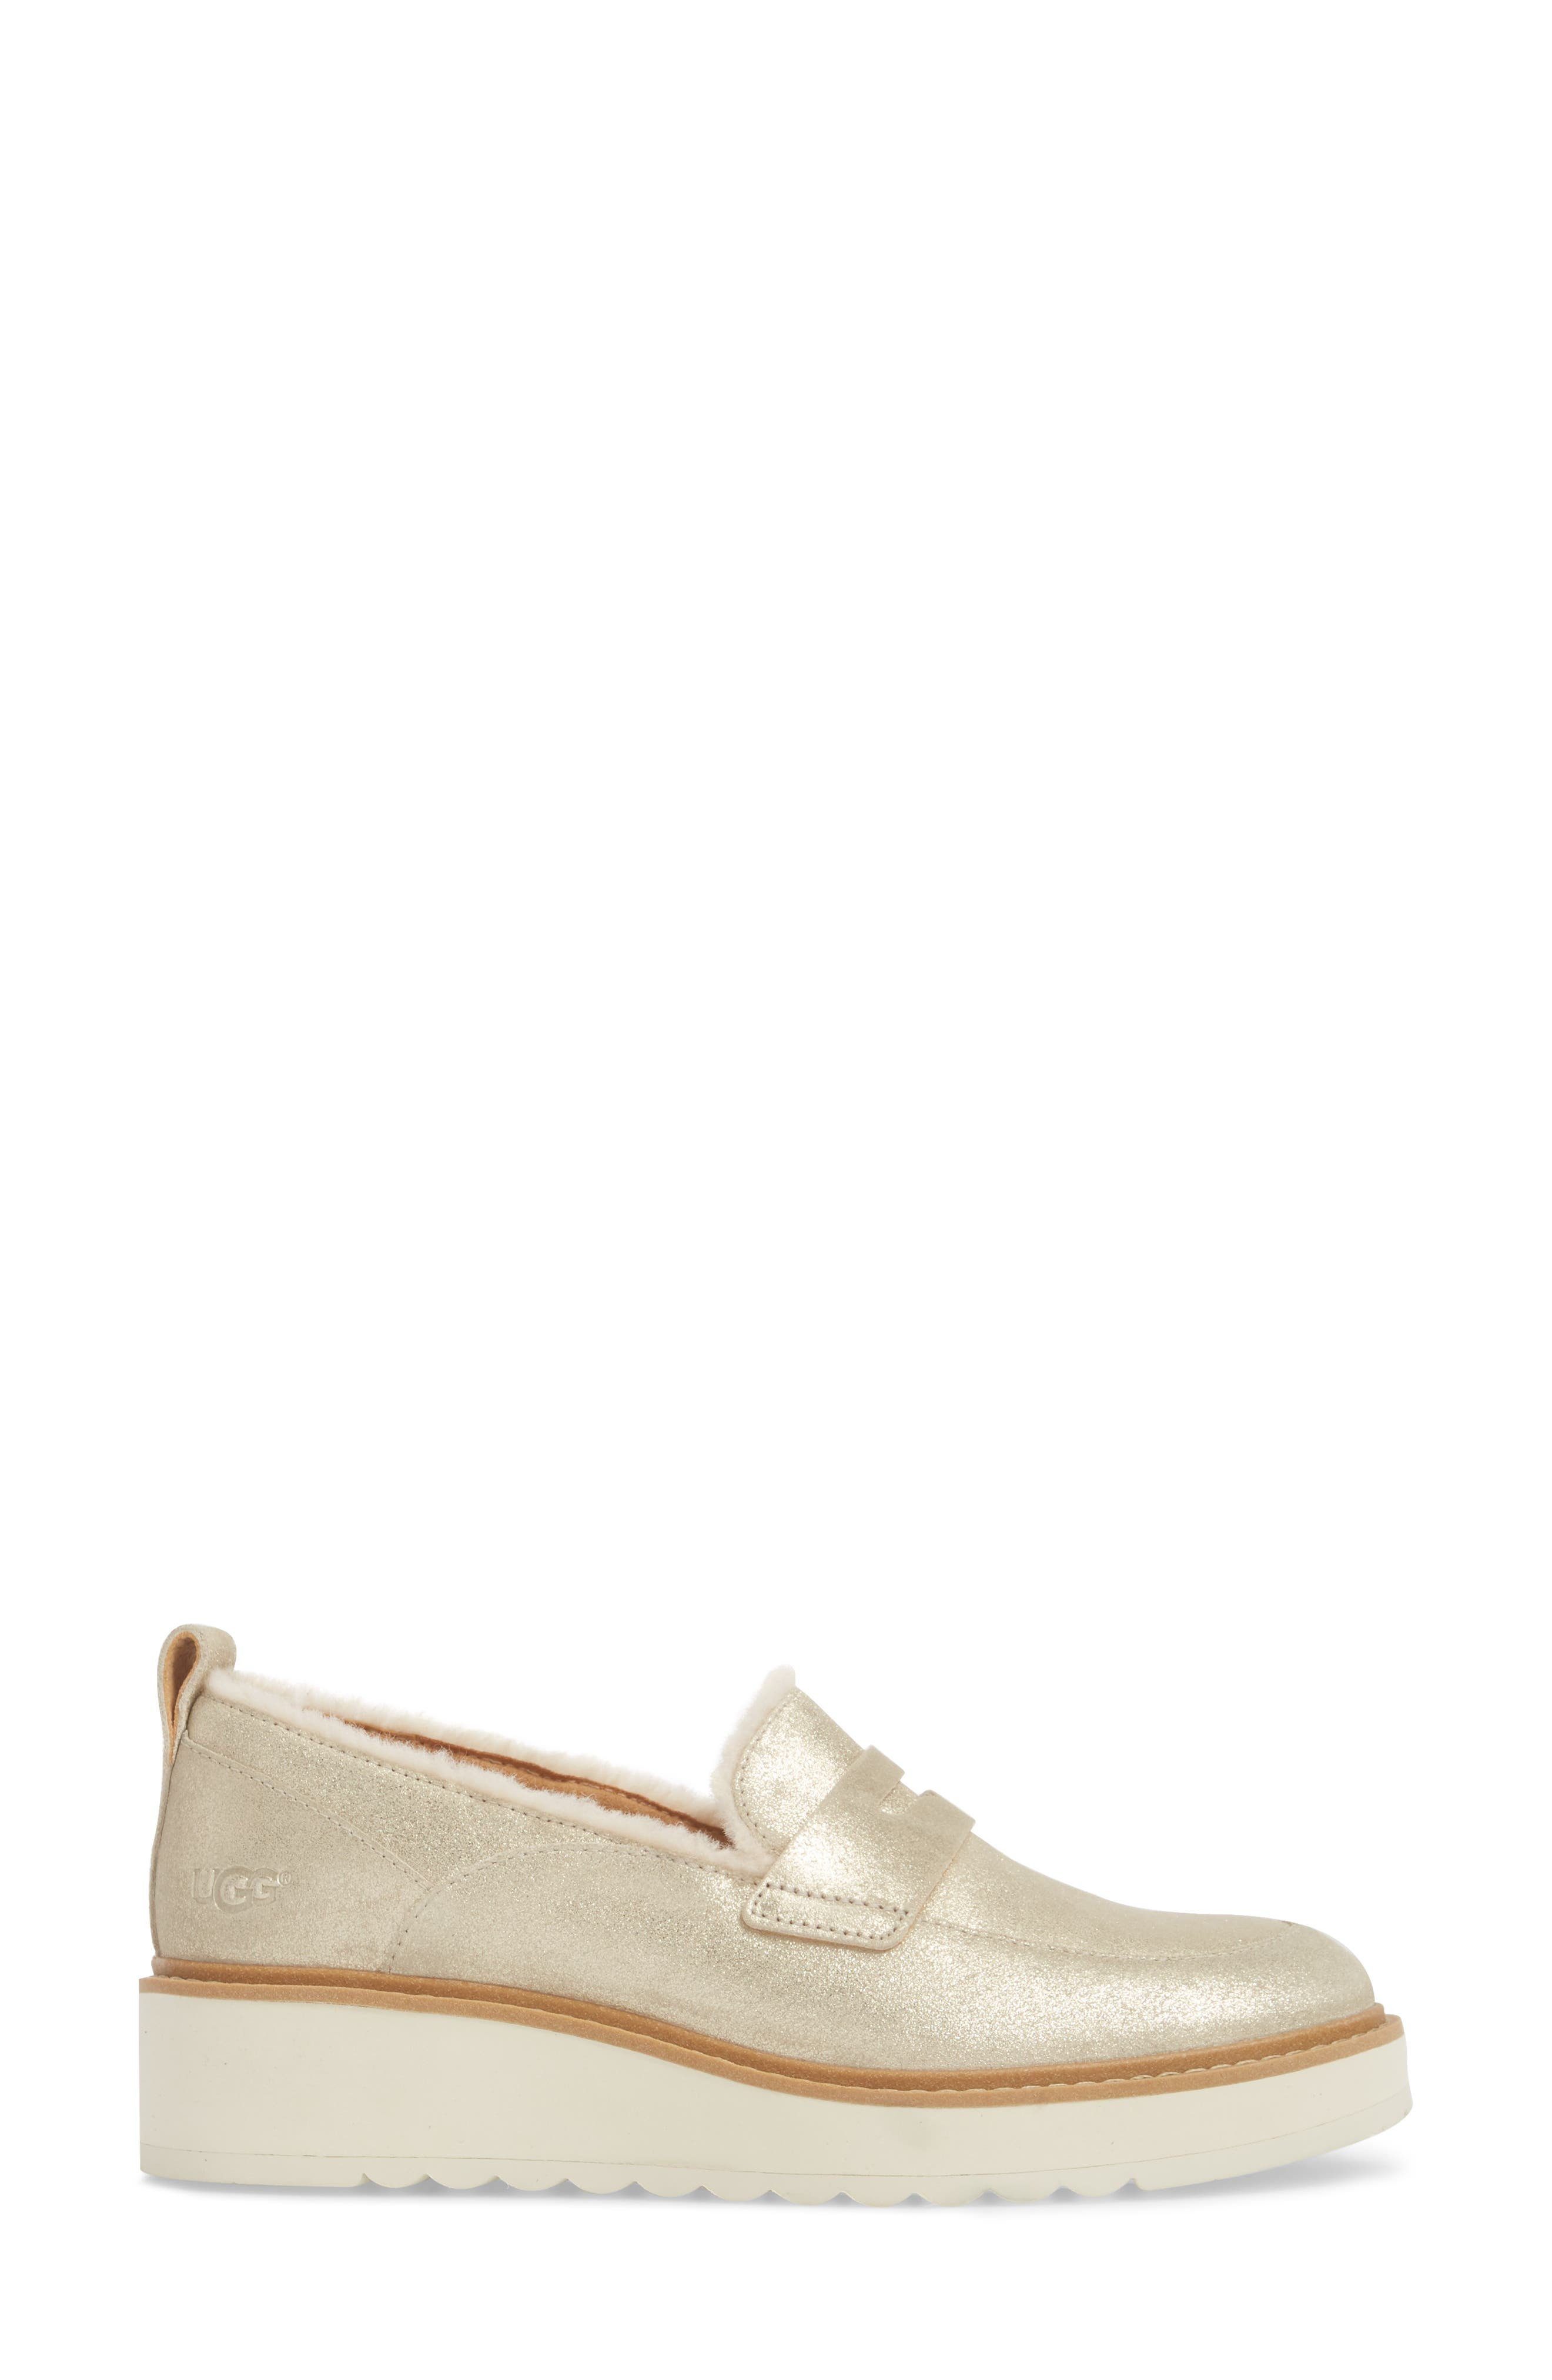 Atwater Metallic Wedge Loafer,                             Alternate thumbnail 3, color,                             710